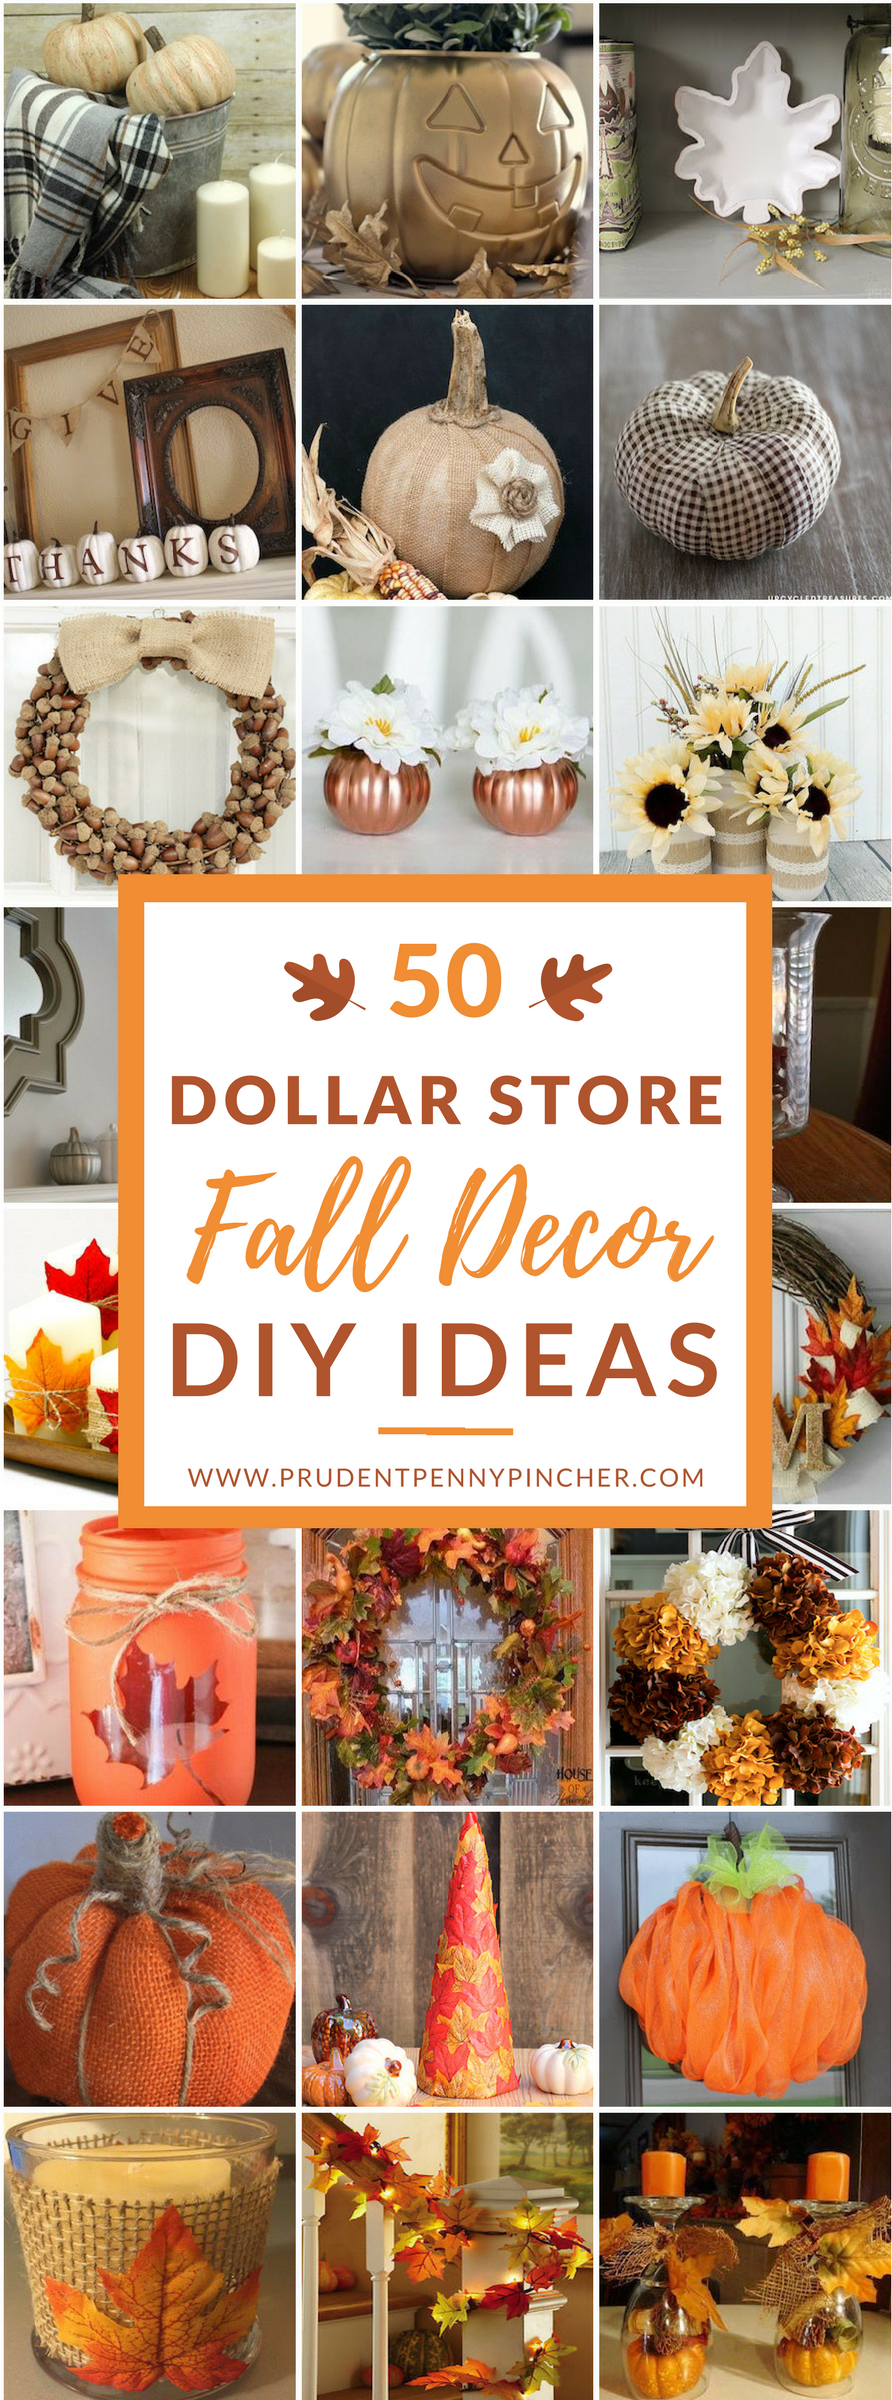 50 dollar store fall decor diy ideas - Diy Fall Decor